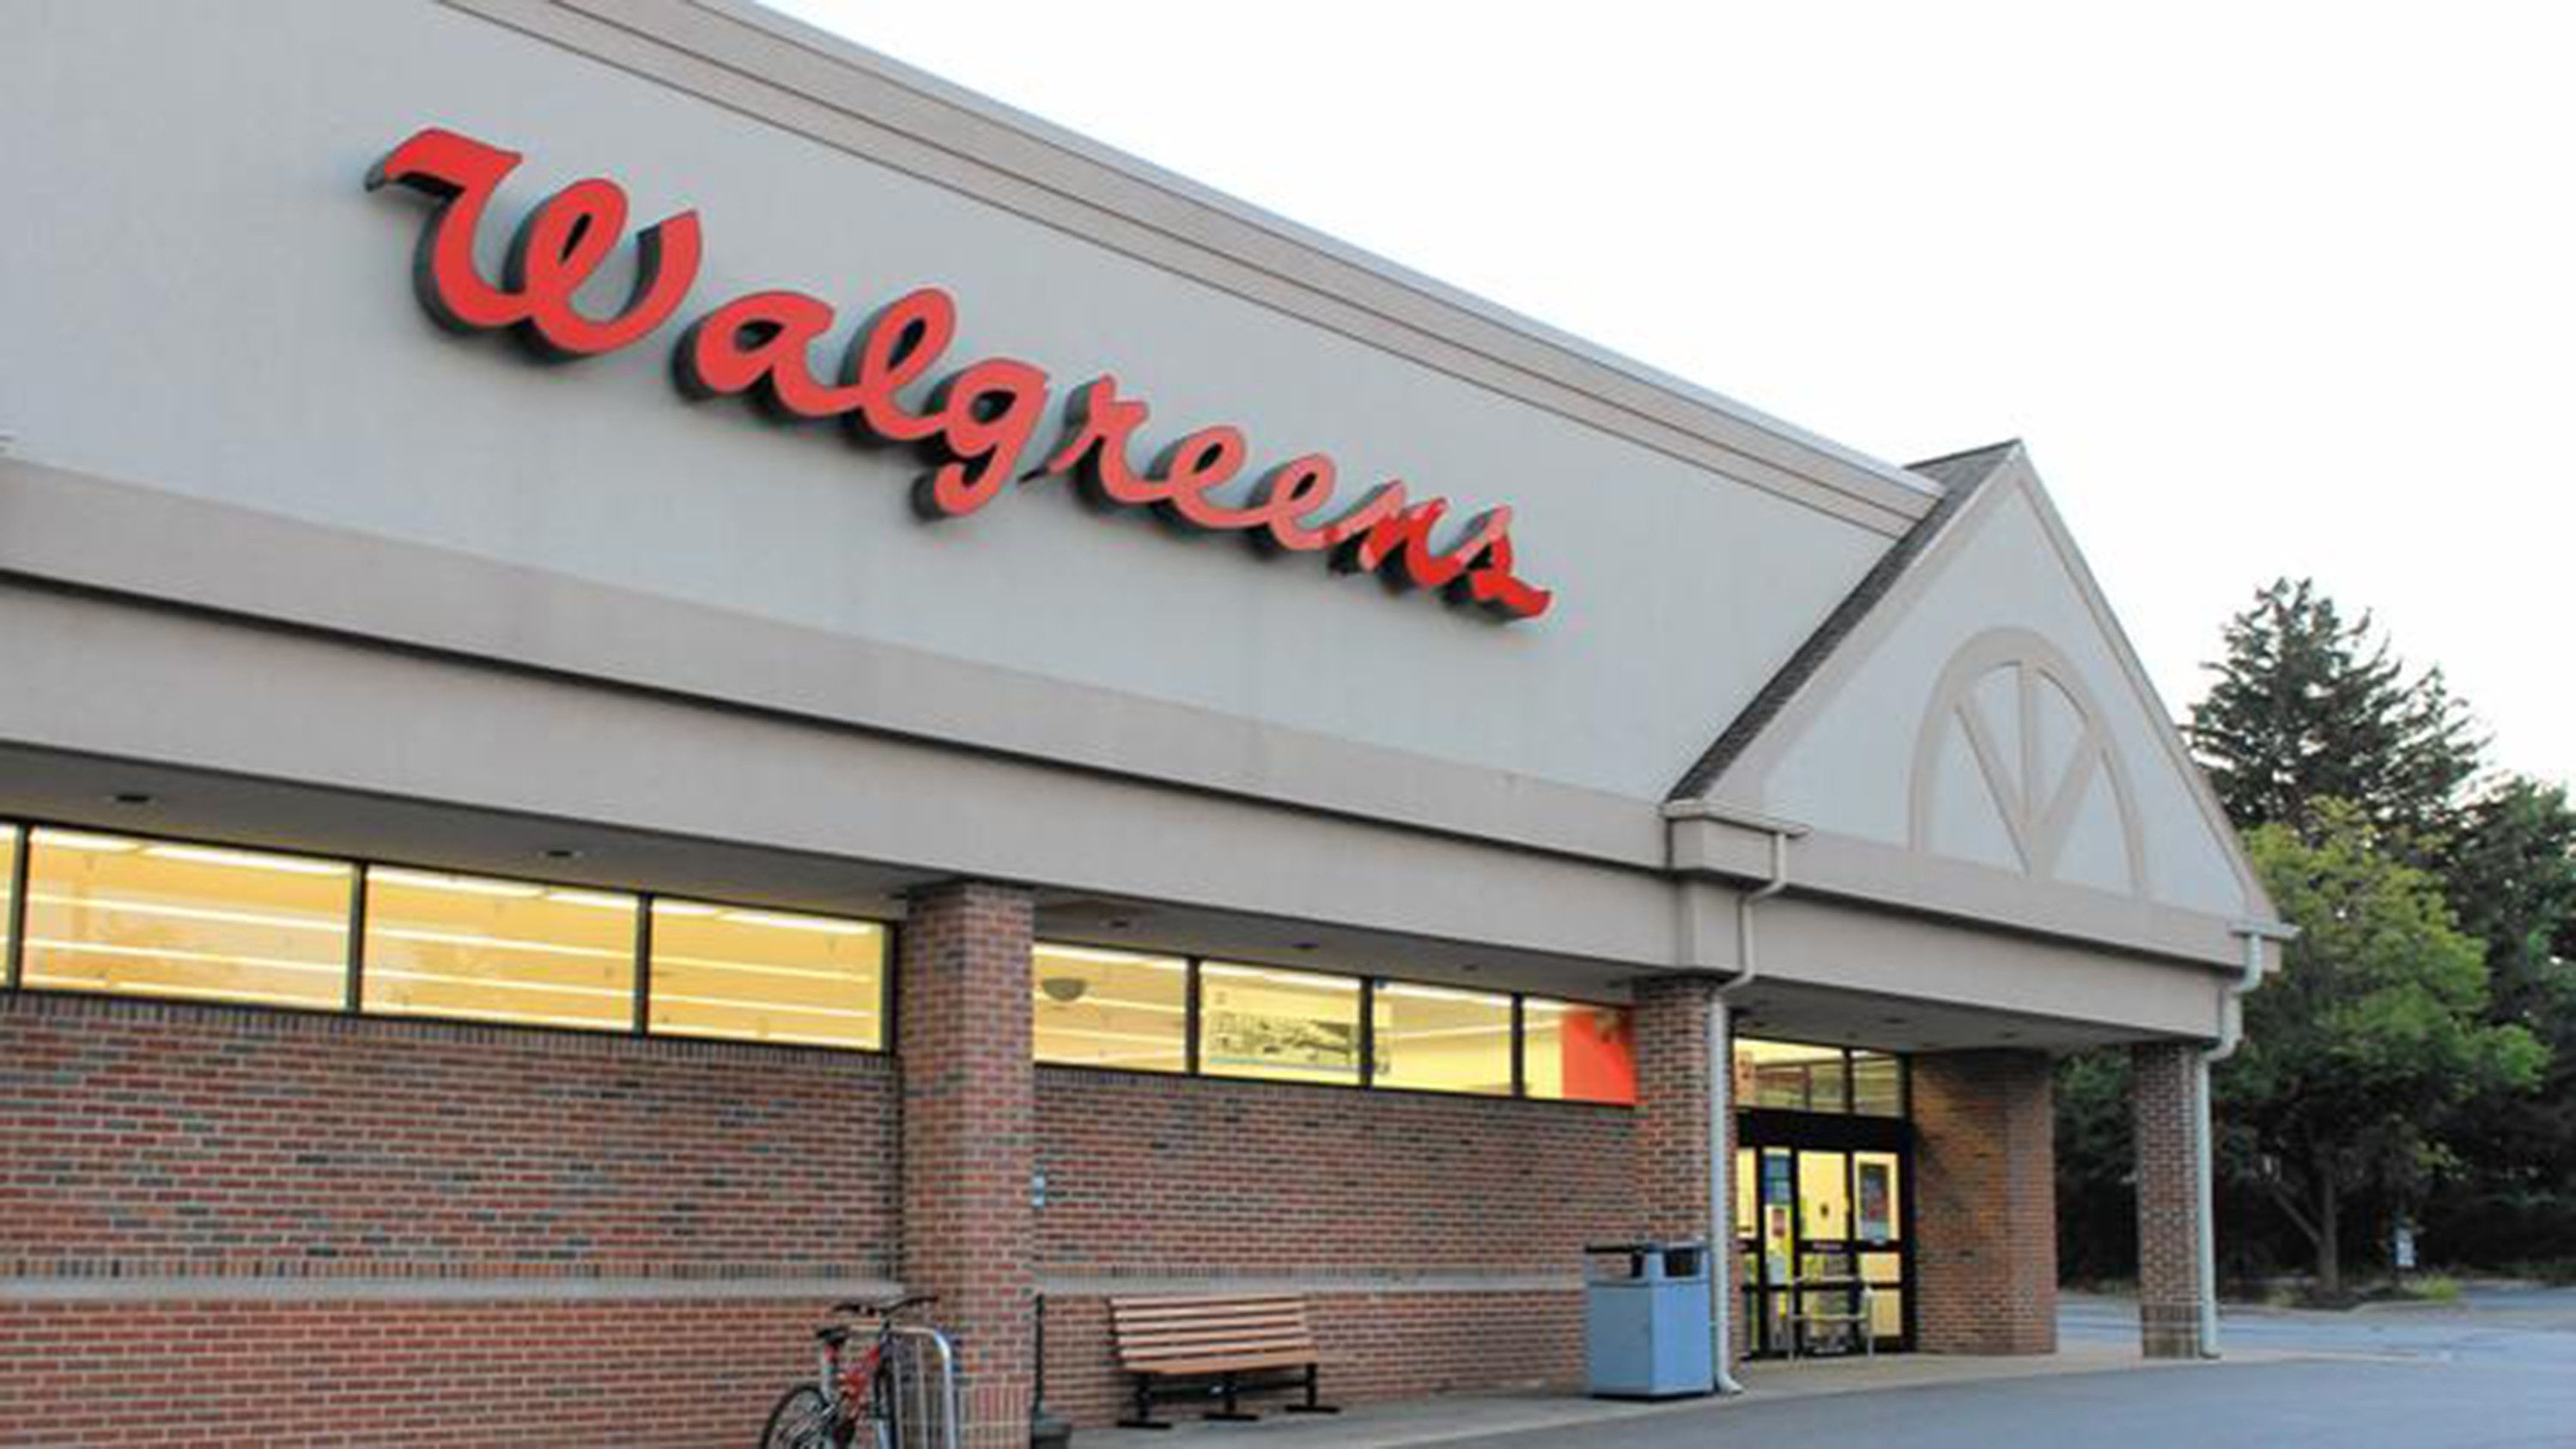 A Walgreens store in Naperville, Ill. in September 2016. Walgreens is eliminating health insurance for most eligible retirees and restricting which part-time employees qualify for paid time off as part of benefits changes. The drugstore chain also is adding a paid parental leave benefit and expanding short-term disability leaves. (Photo by Genevieve Bookwalter/Pioneer Press/TNS/Sipa USA)